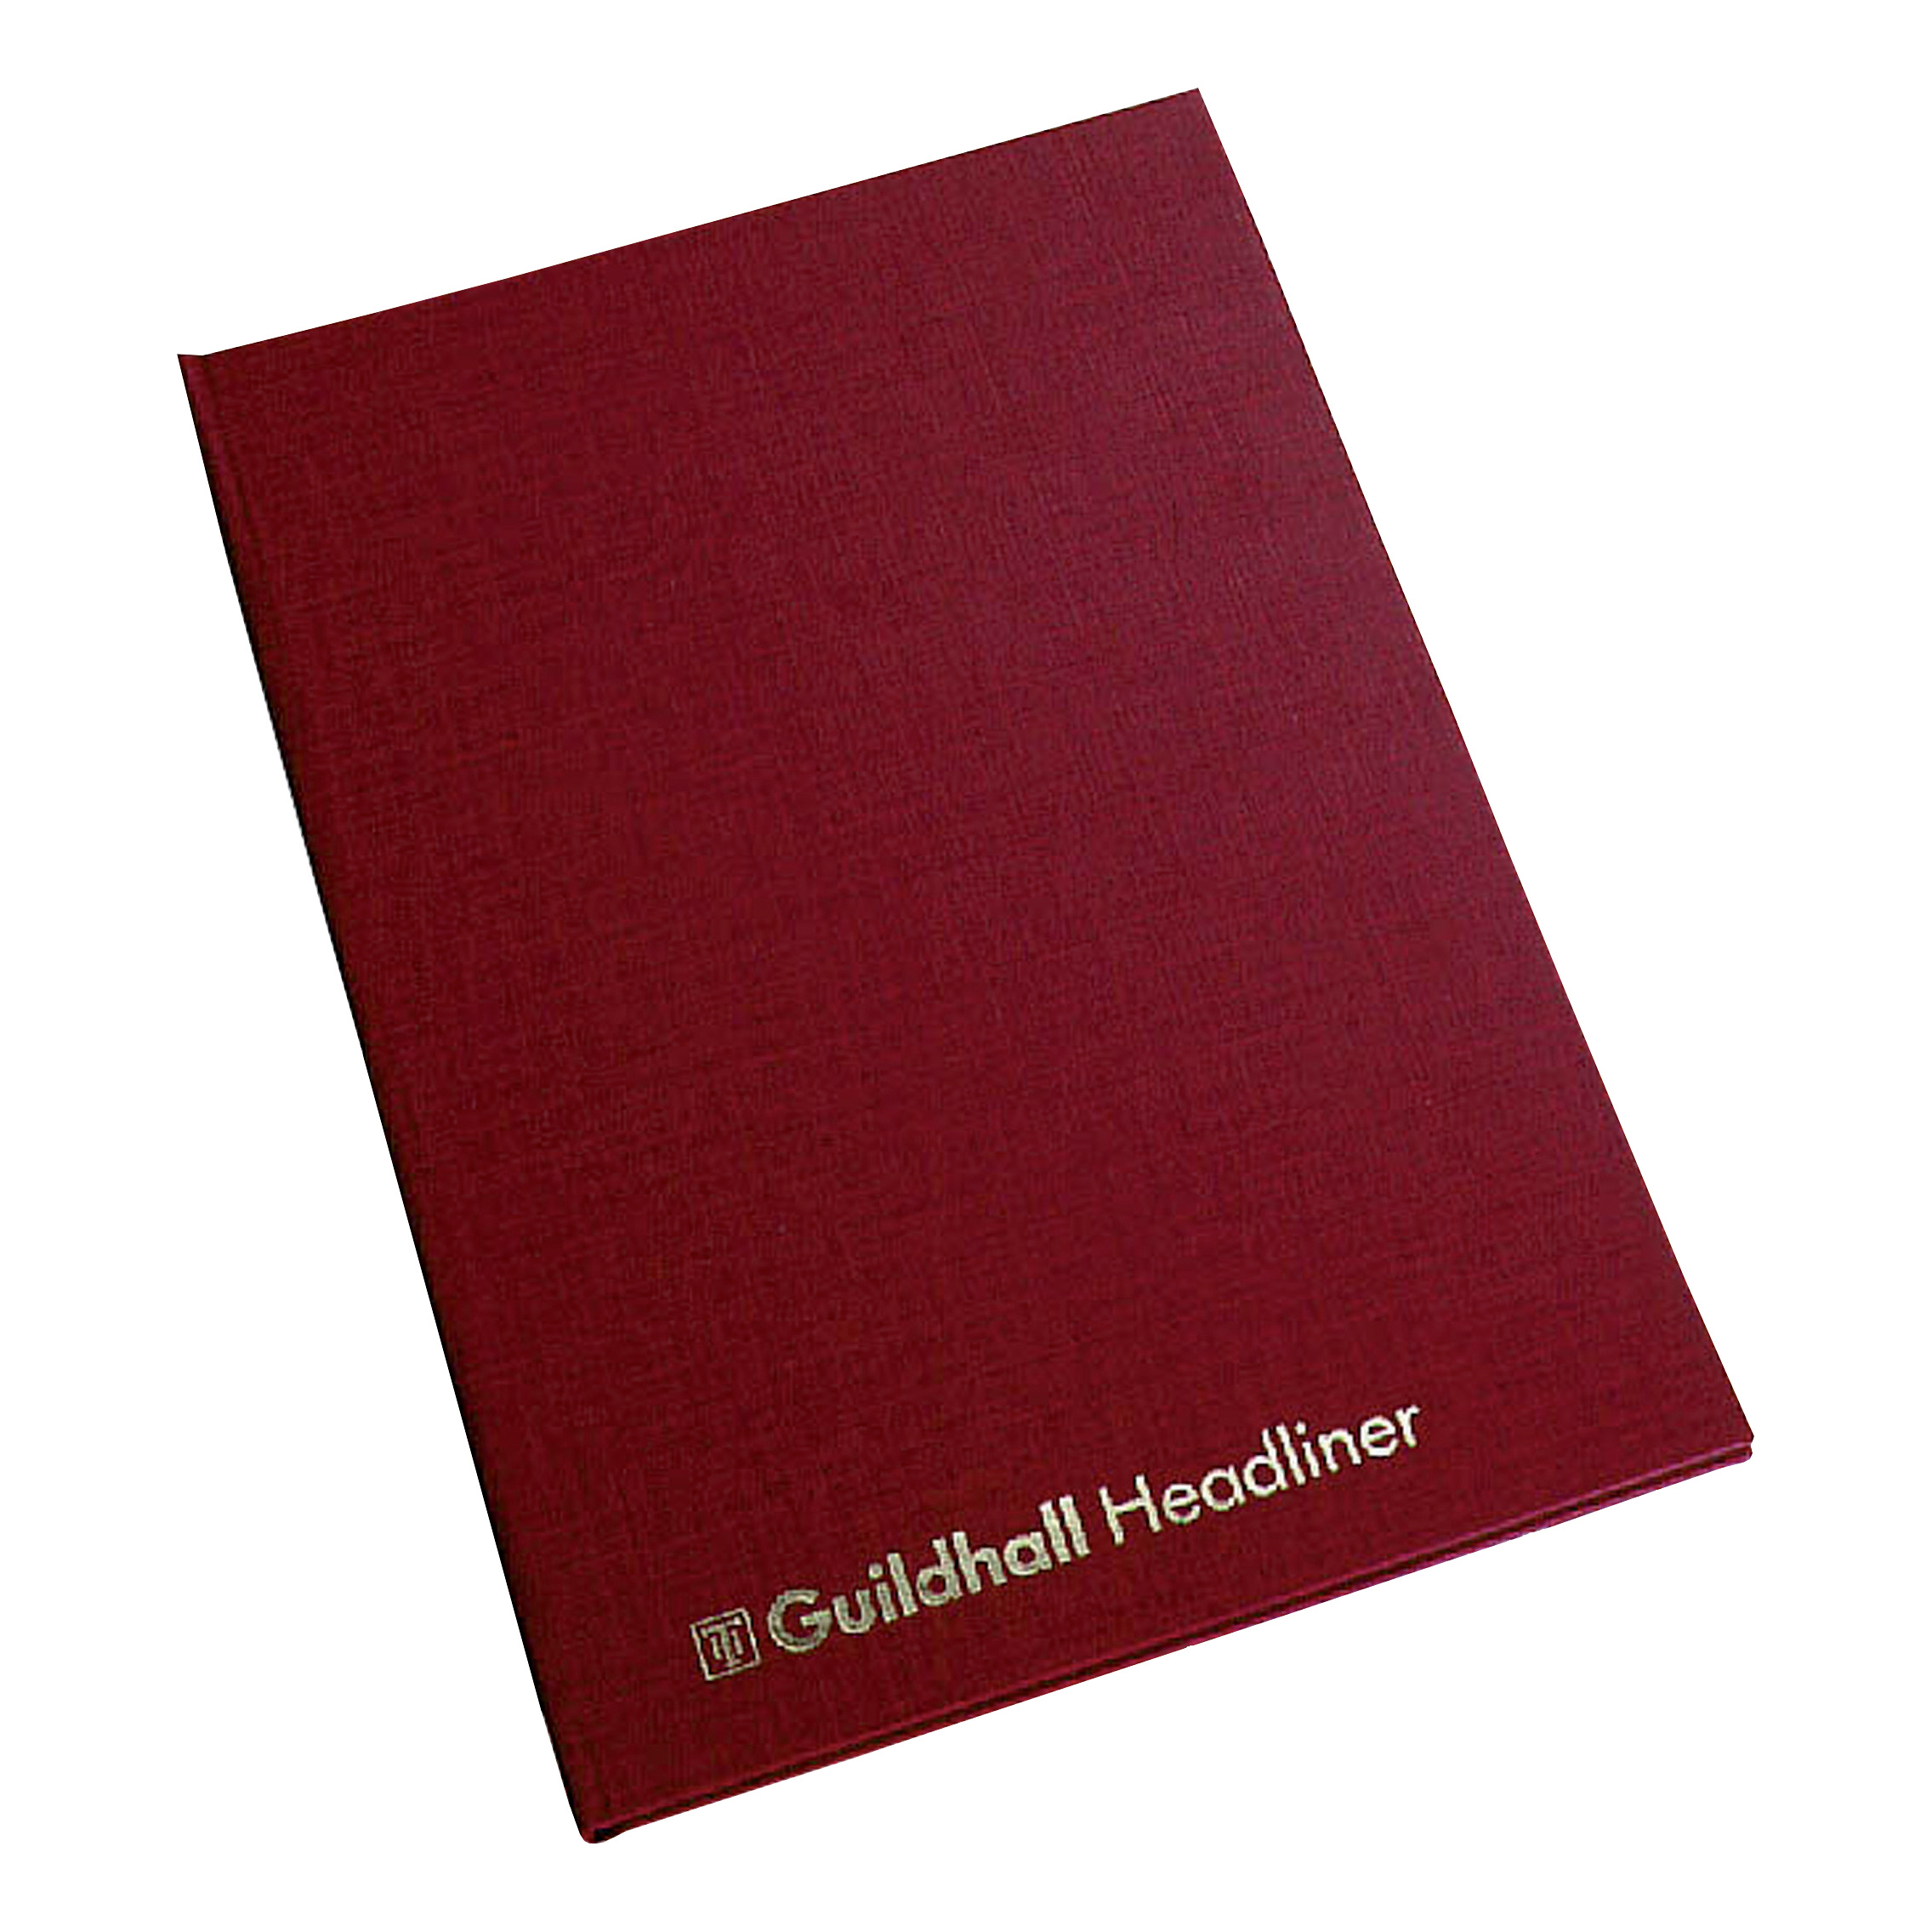 Guildhall Headliner Account Book 38 Series 12 Cash Column 80 Pages 298x203mm Ref 38/12Z